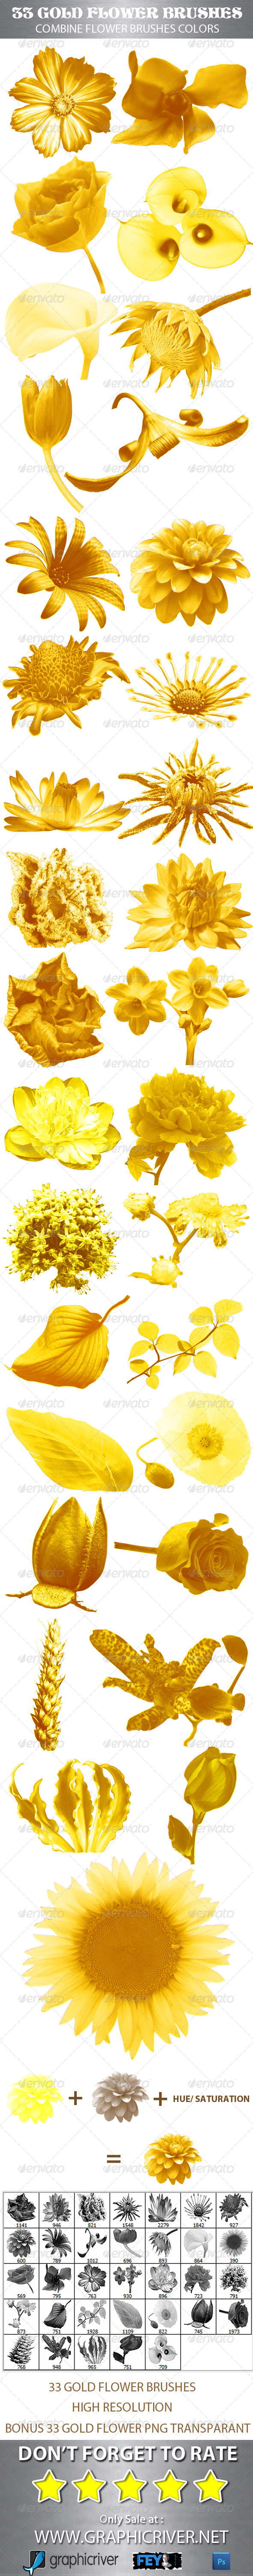 GraphicRiver 33 Gold Flower Brushes 5165602